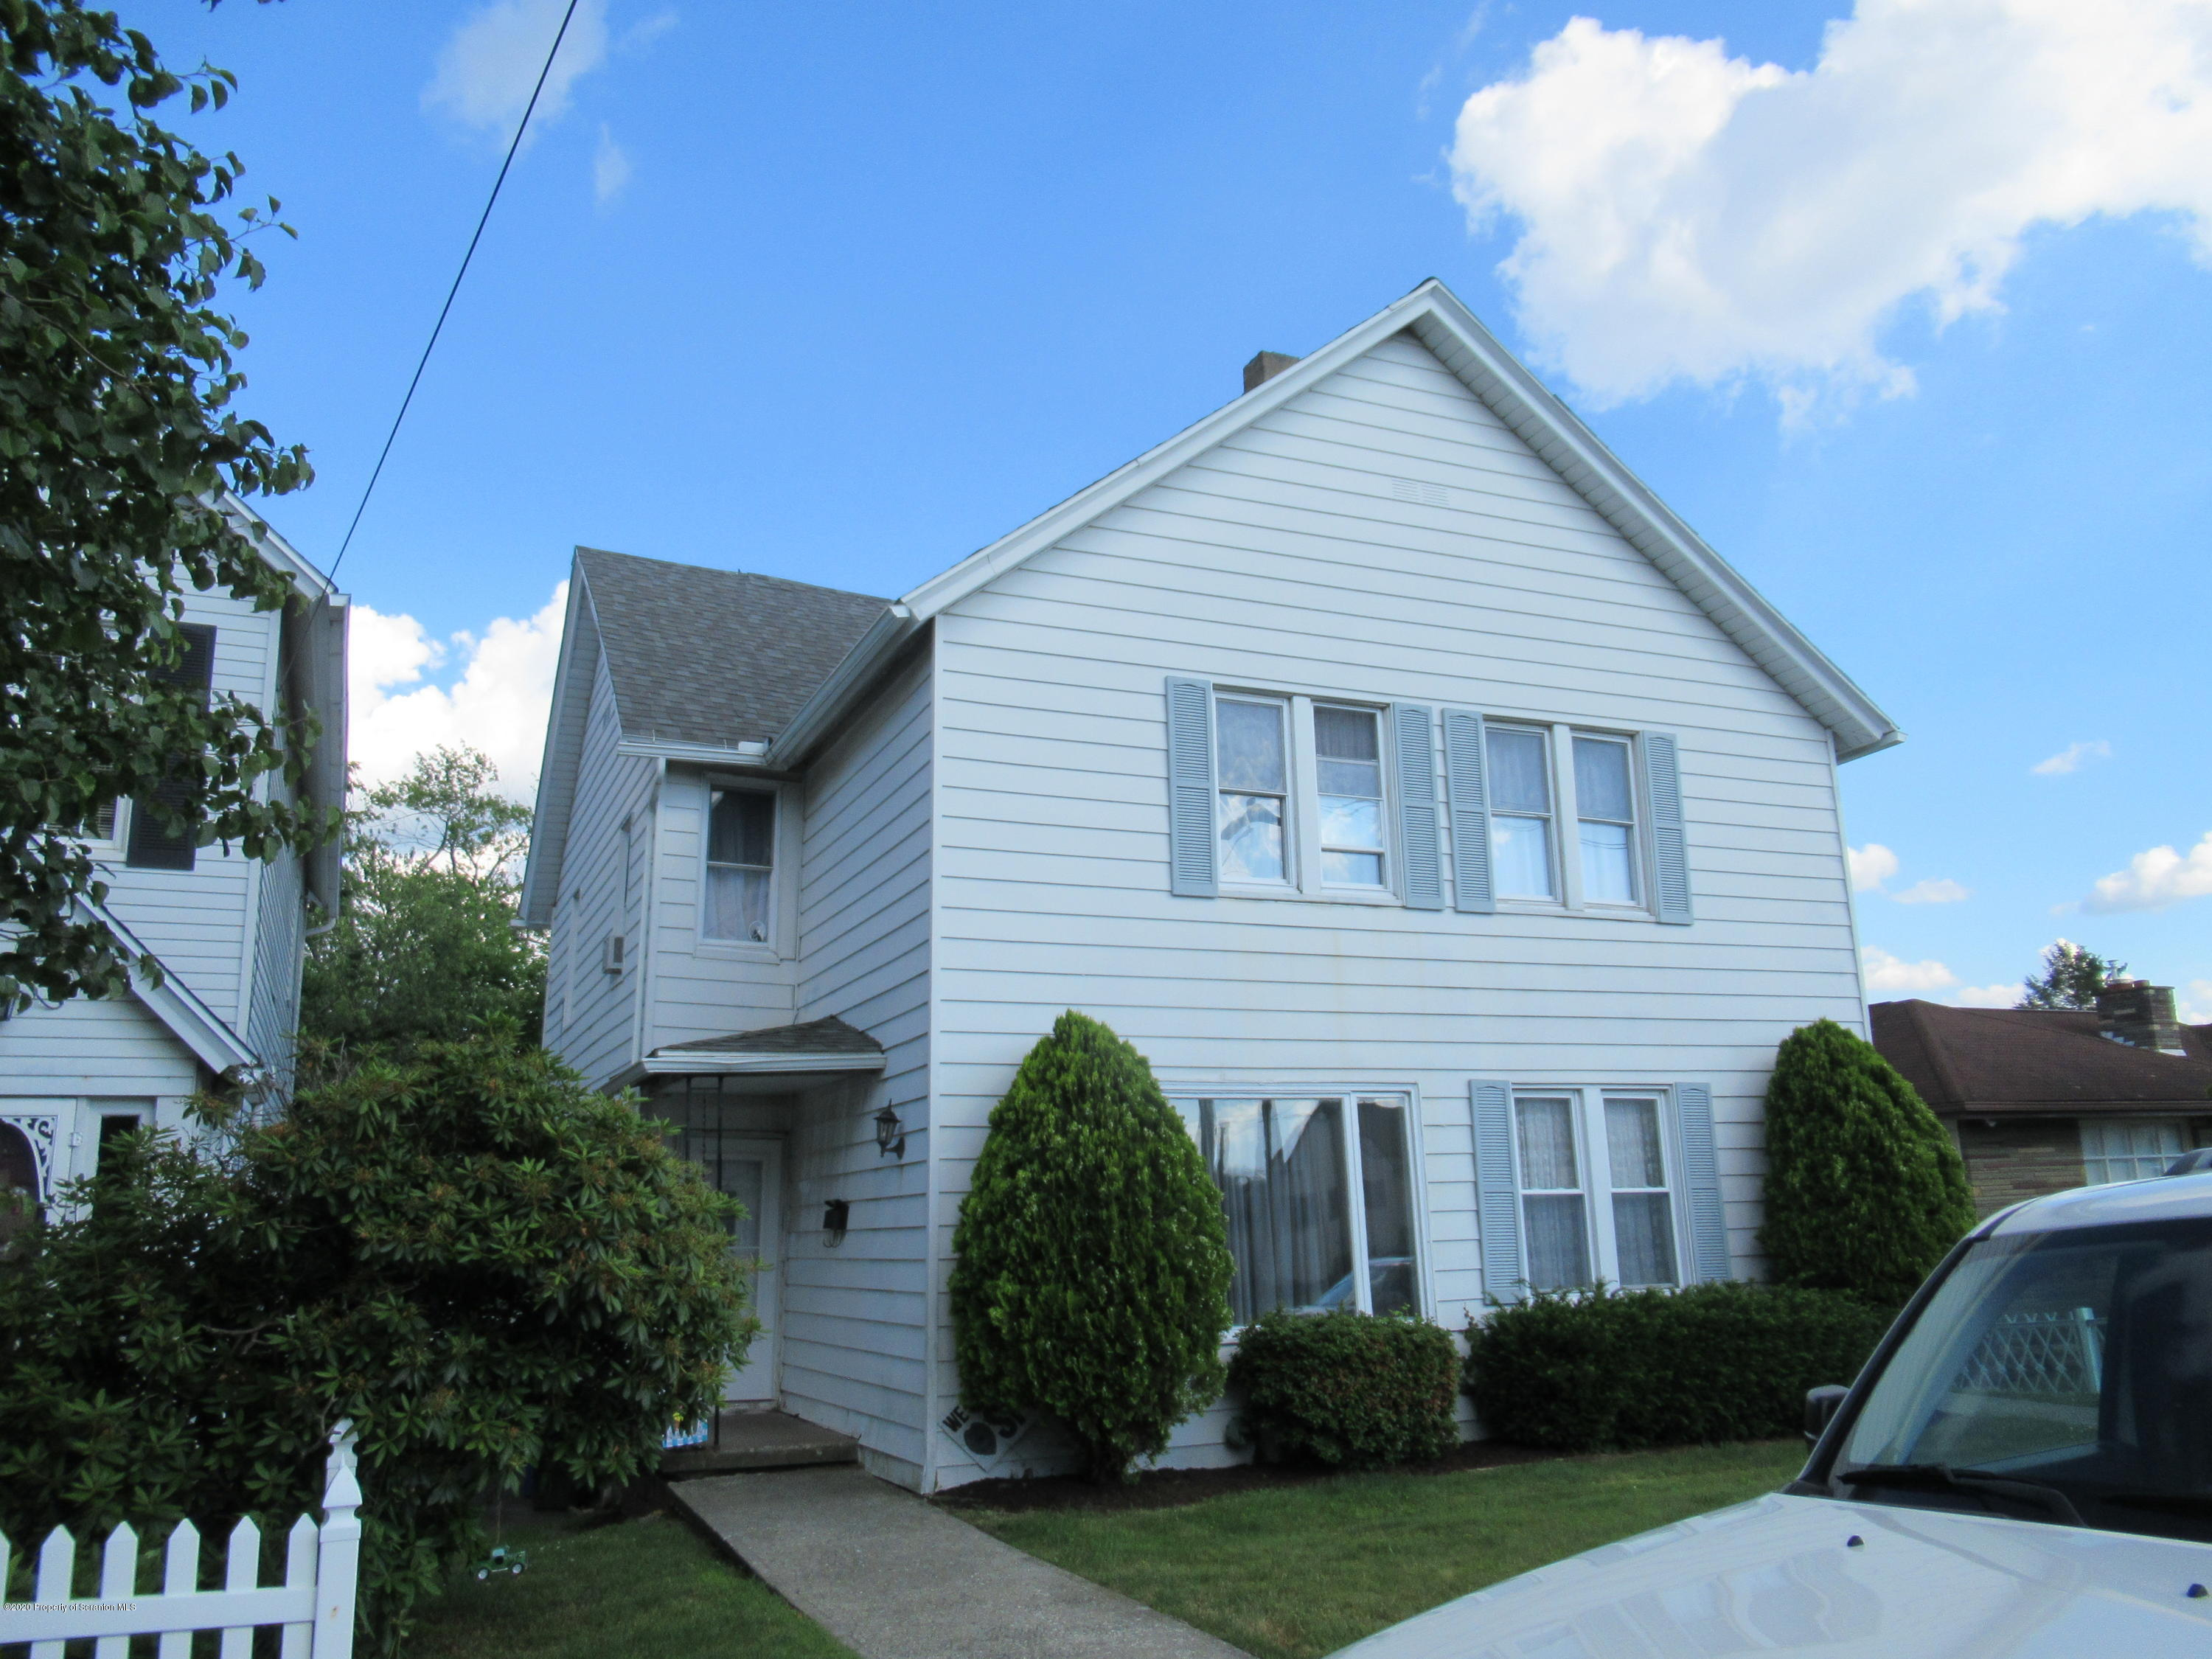 526 - 528 Filmore Ave, Scranton, Pennsylvania 18504, ,Multi-Family,For Sale,Filmore,20-2268